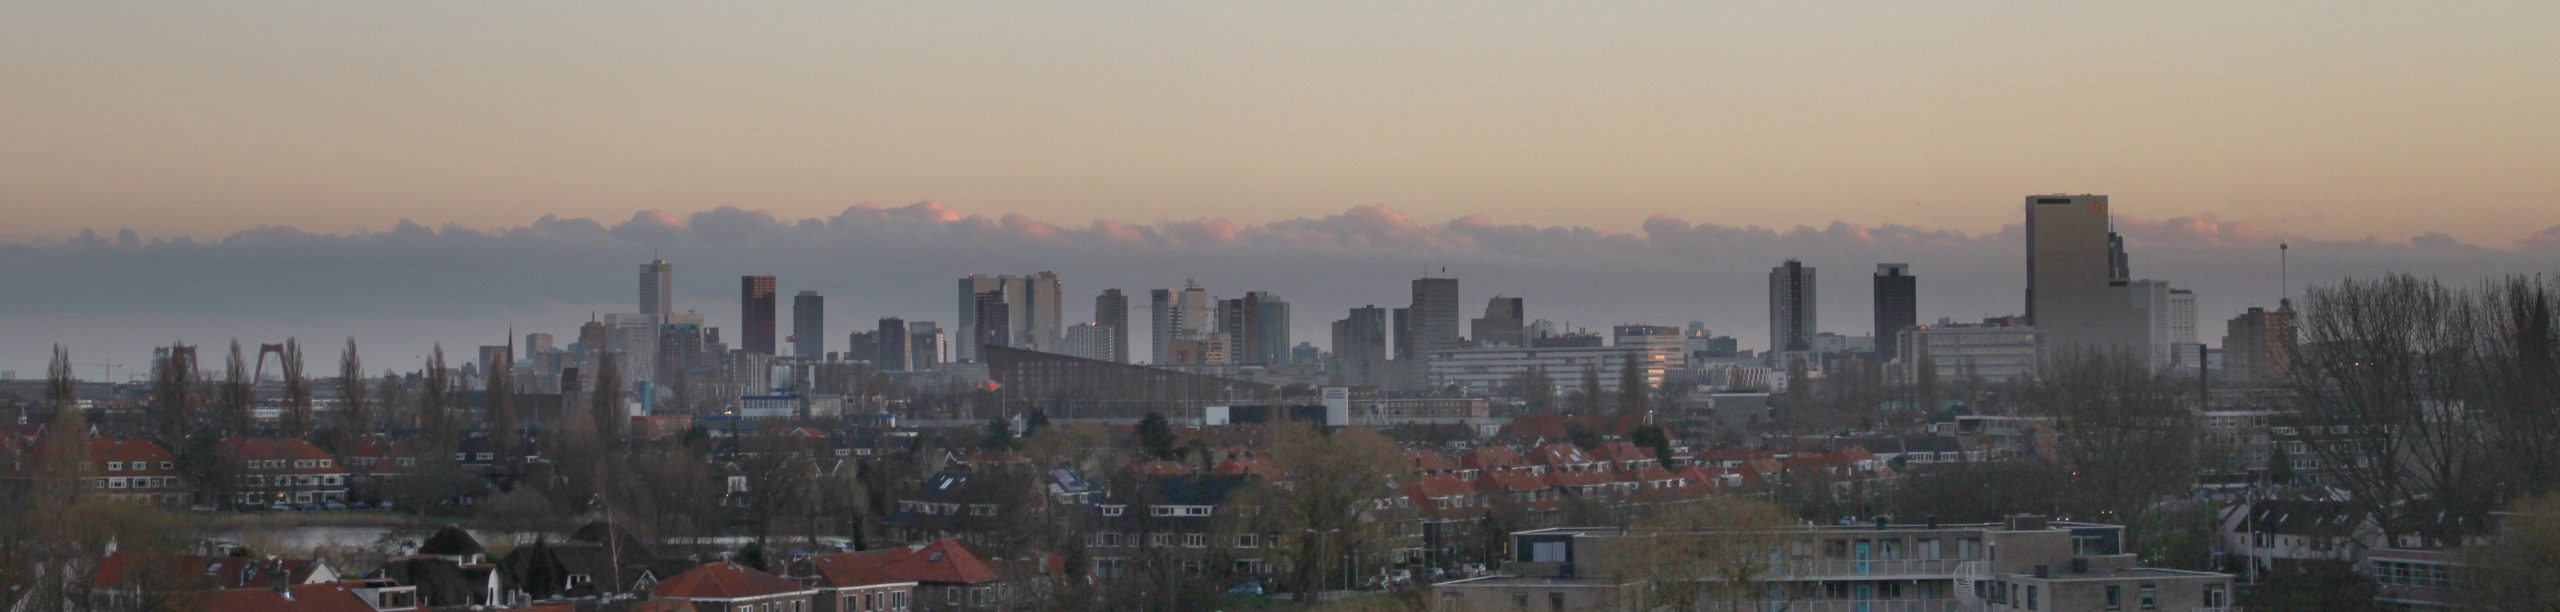 Skyline Rotterdam from Schiebroek